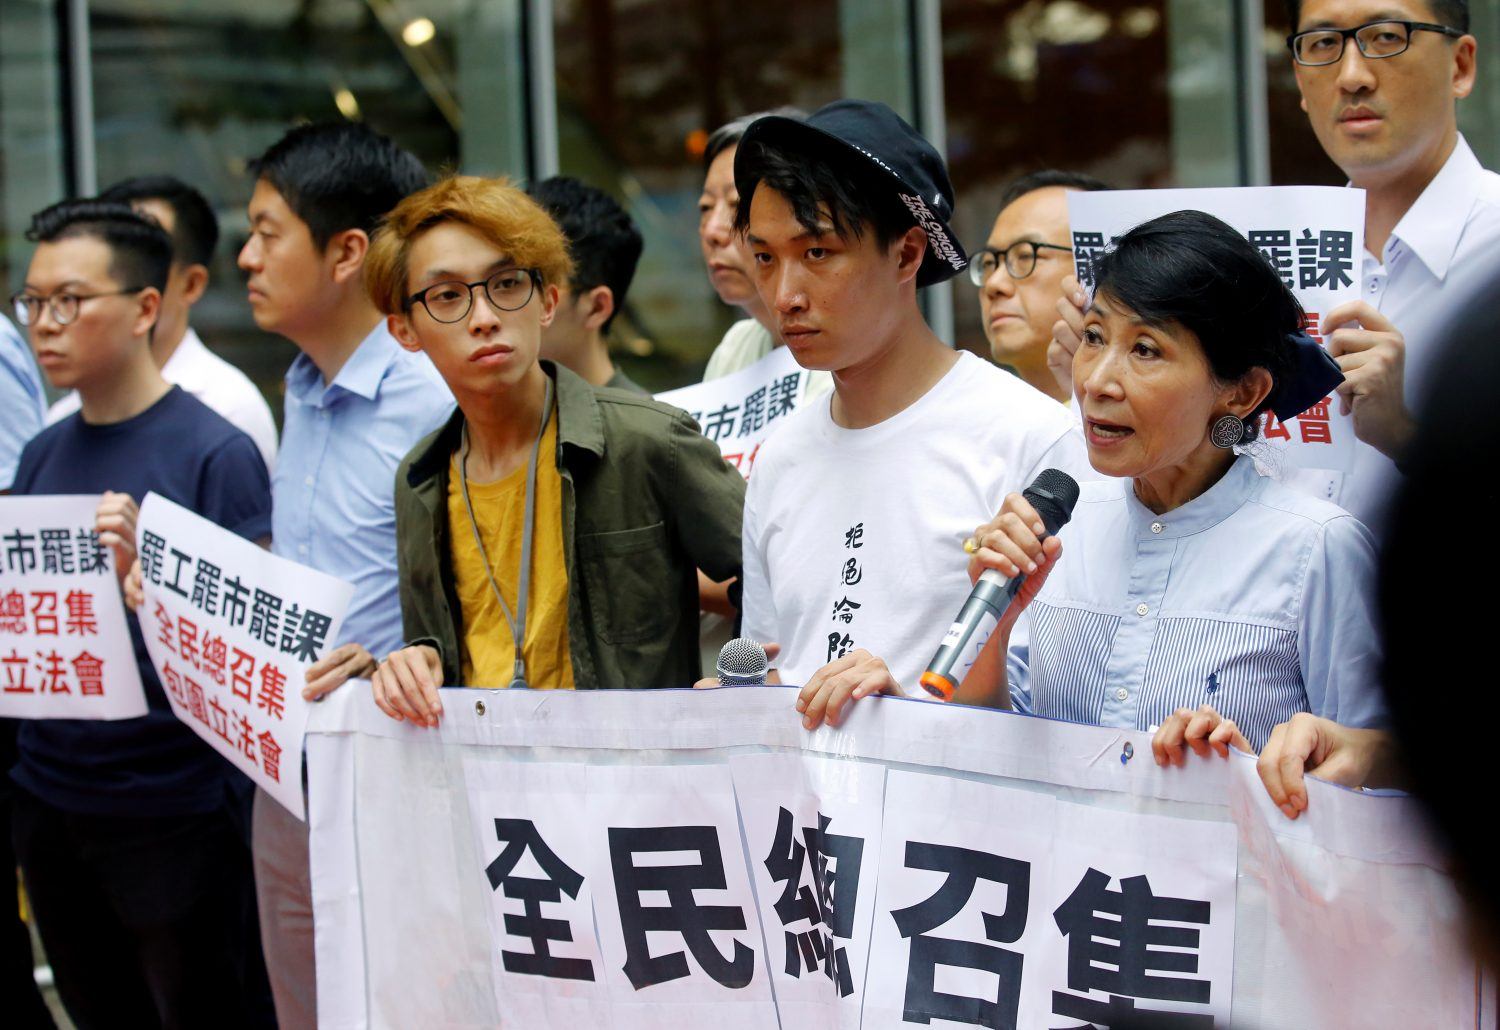 Hong Kong braced for strikes, transport go-slows and another mass demonstration in protest against a proposed extradition law that would allow people to be sent to China for trial, as the Chinese-ruled city's leader vowed defiance.